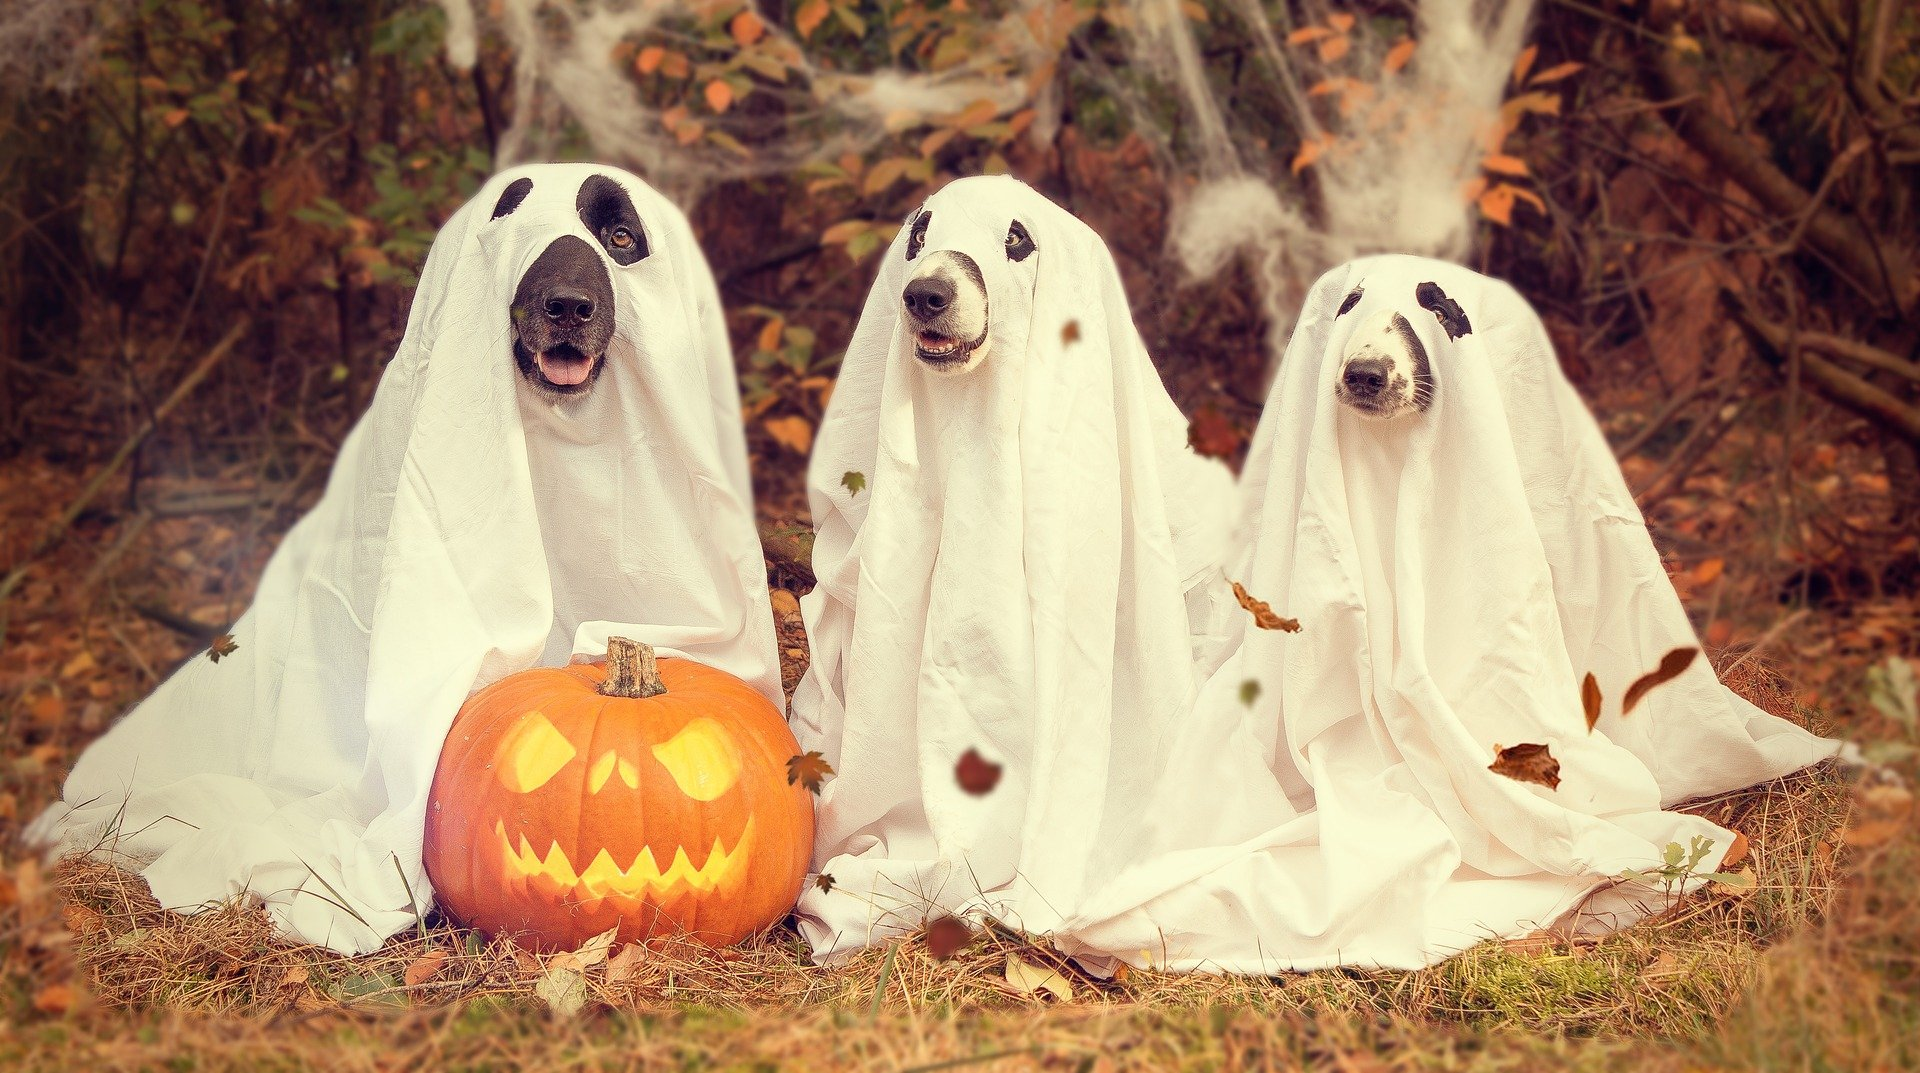 Positive Things About Halloween 2020 Saturday Halloween   Top 3 Pros and Cons   ProCon.org